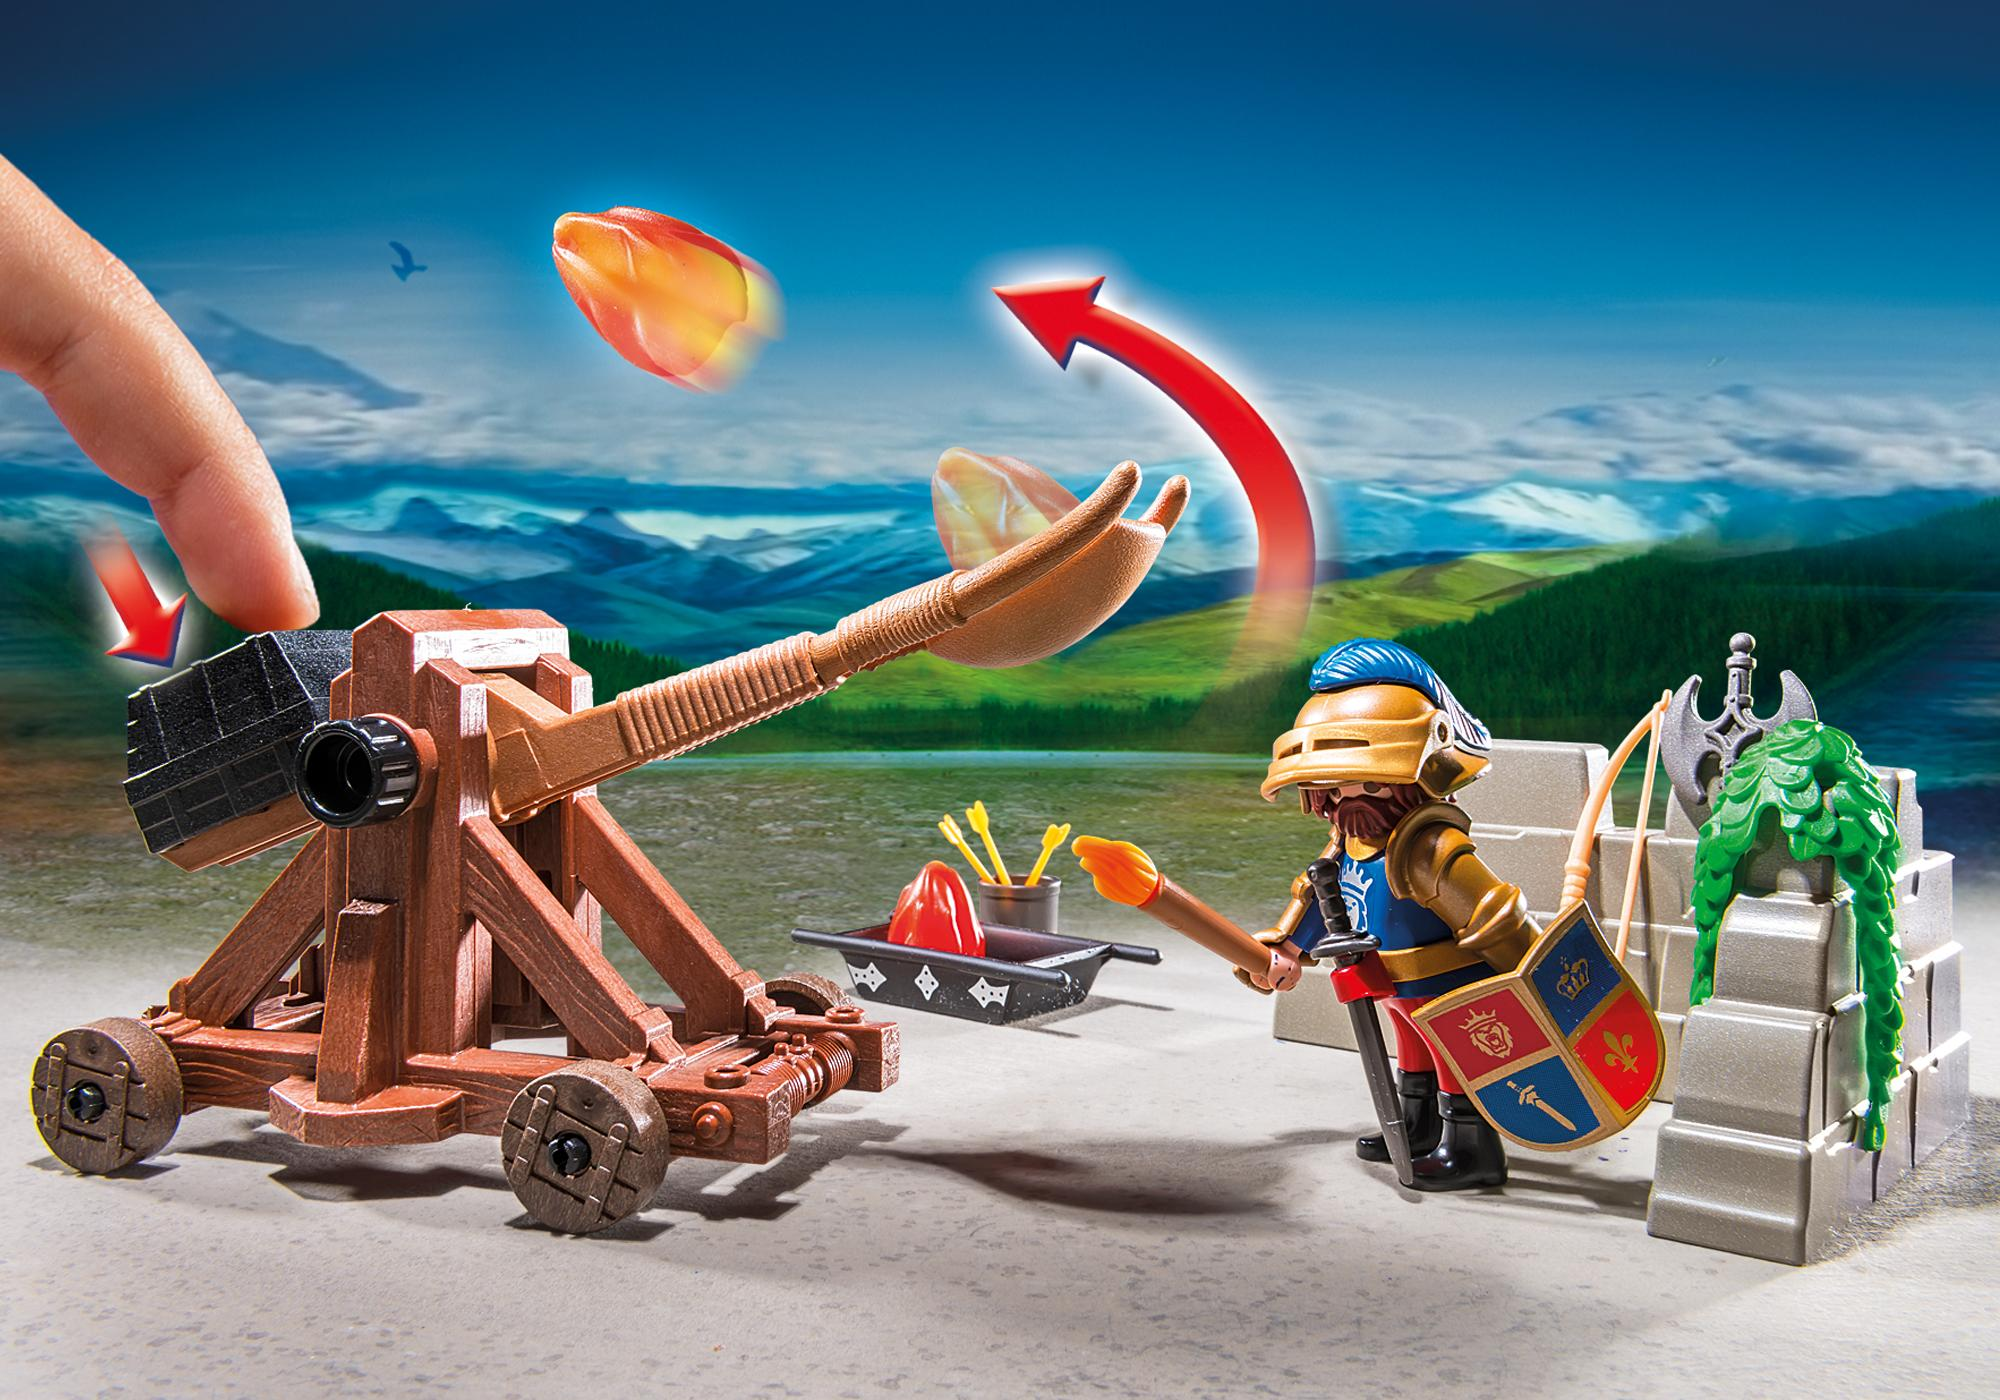 http://media.playmobil.com/i/playmobil/6039_product_extra1/Рыцари: Катапульта Рыцарей Льва